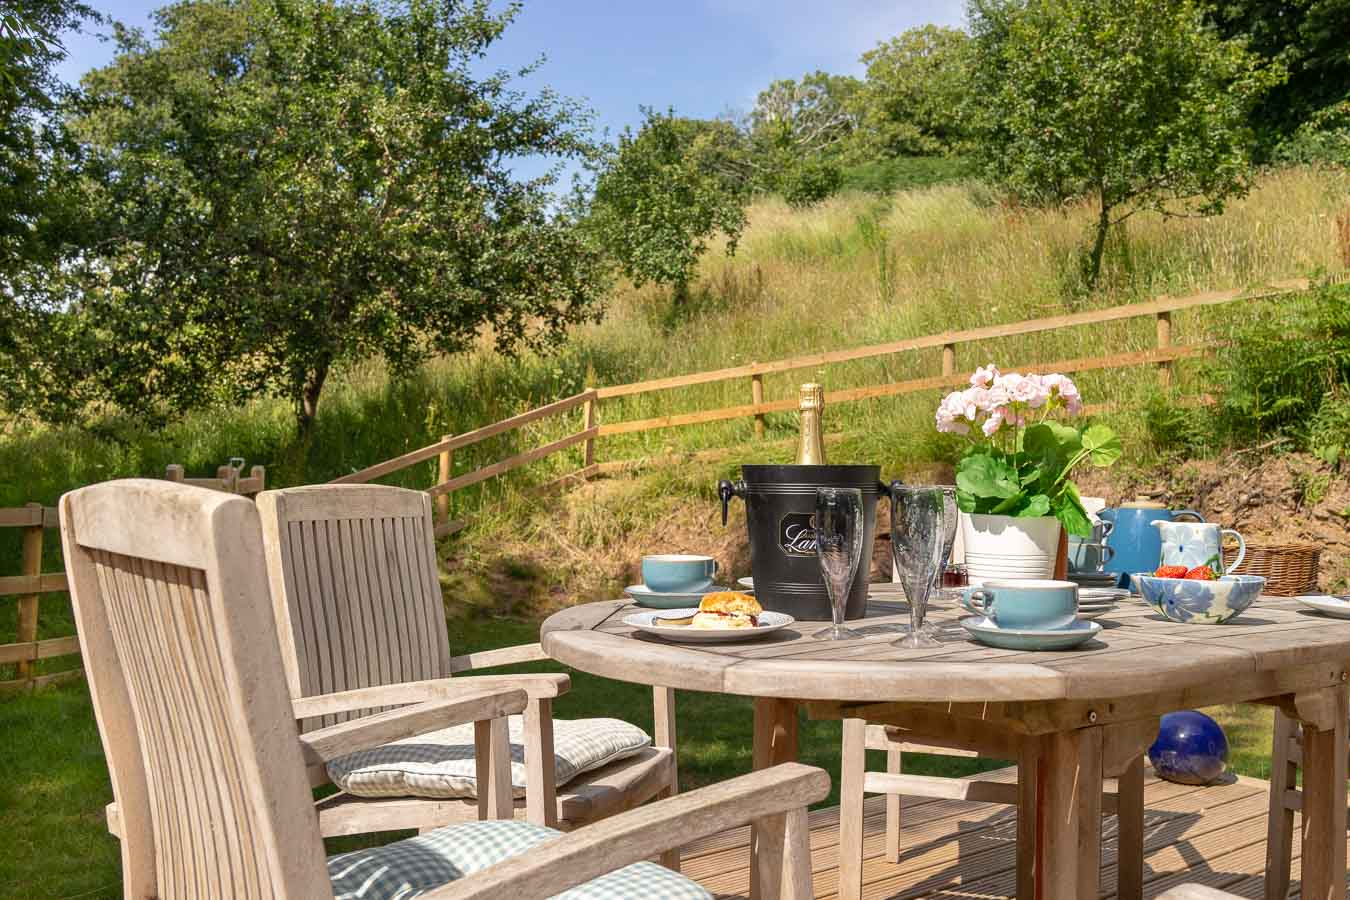 Orchard Lodge's private deck and garden overlooking the beautiful and inspirit Orchard.